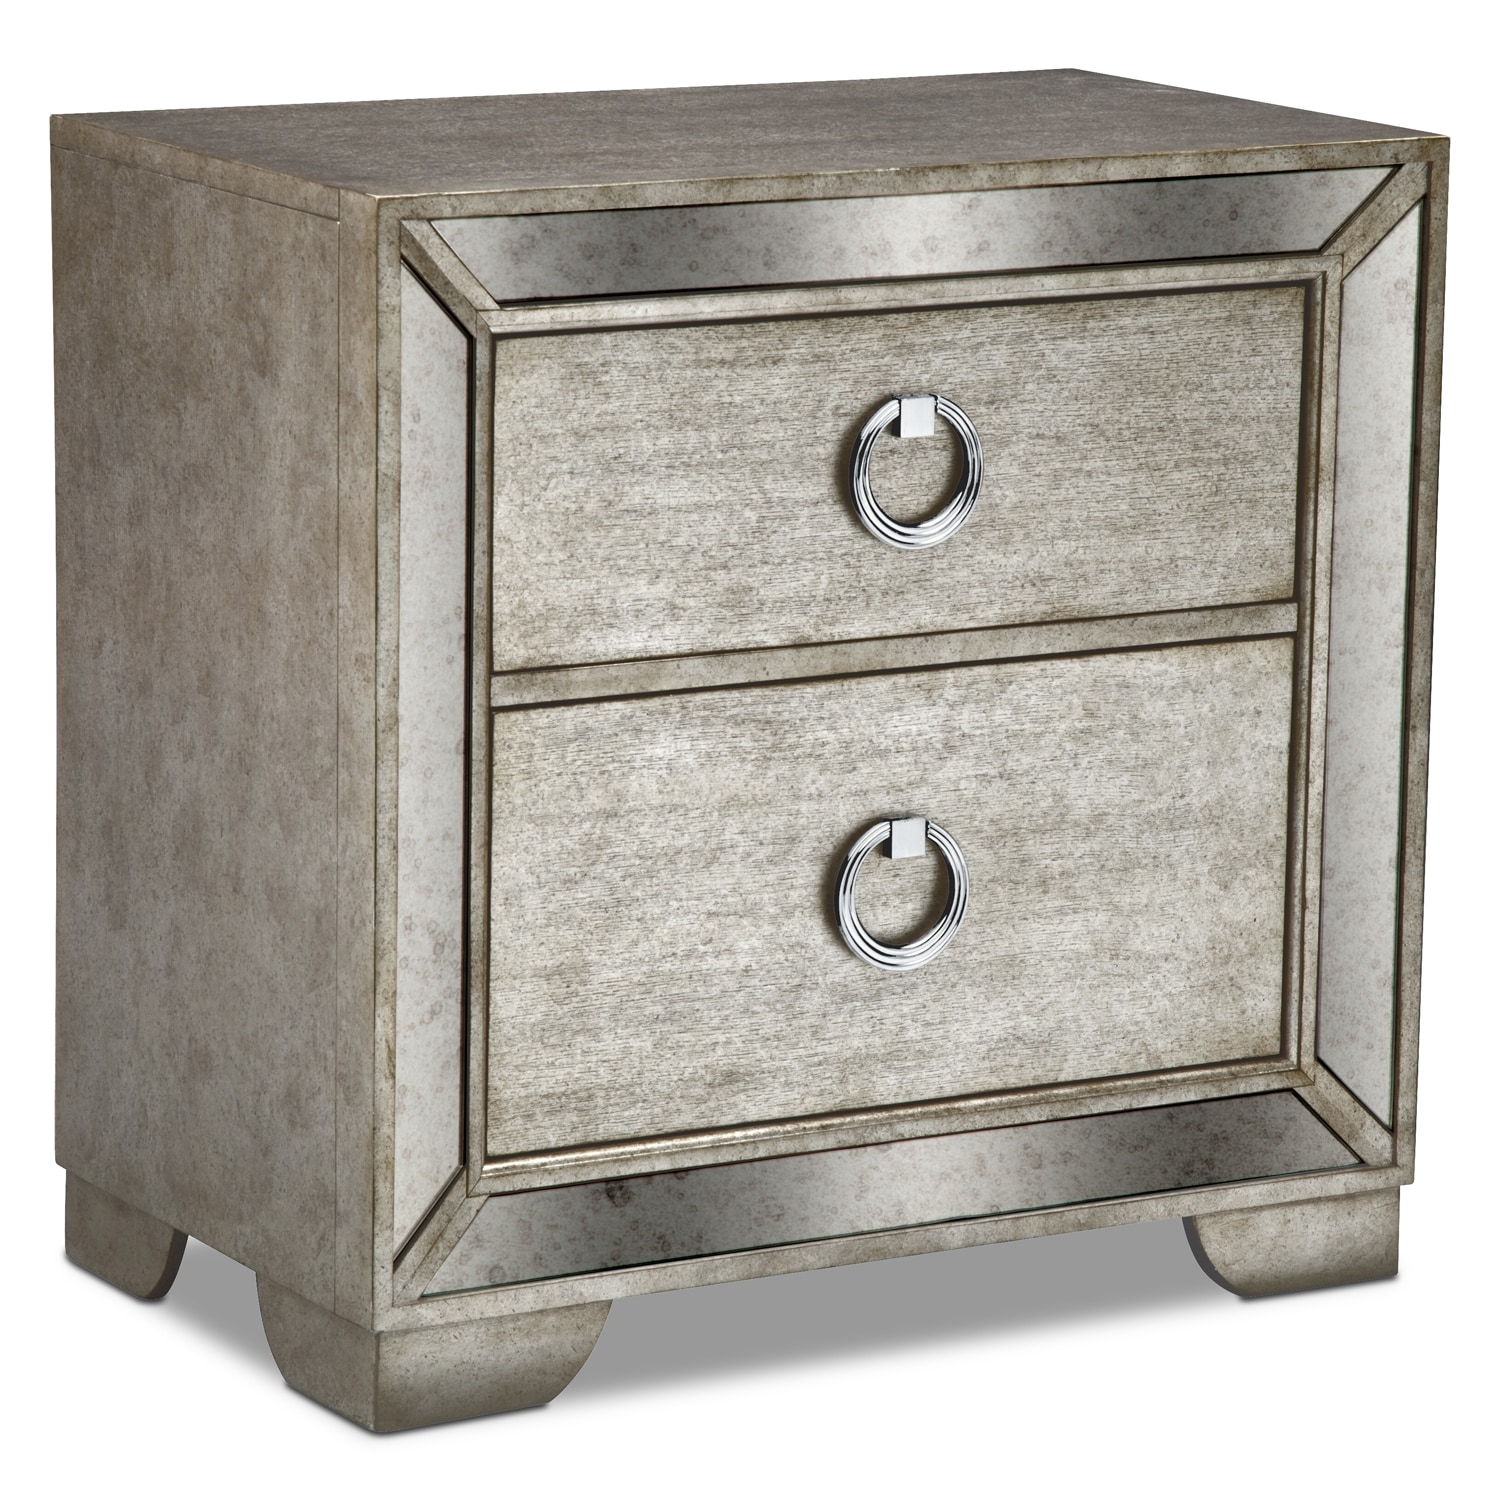 Angelina Nightstand - Metallic